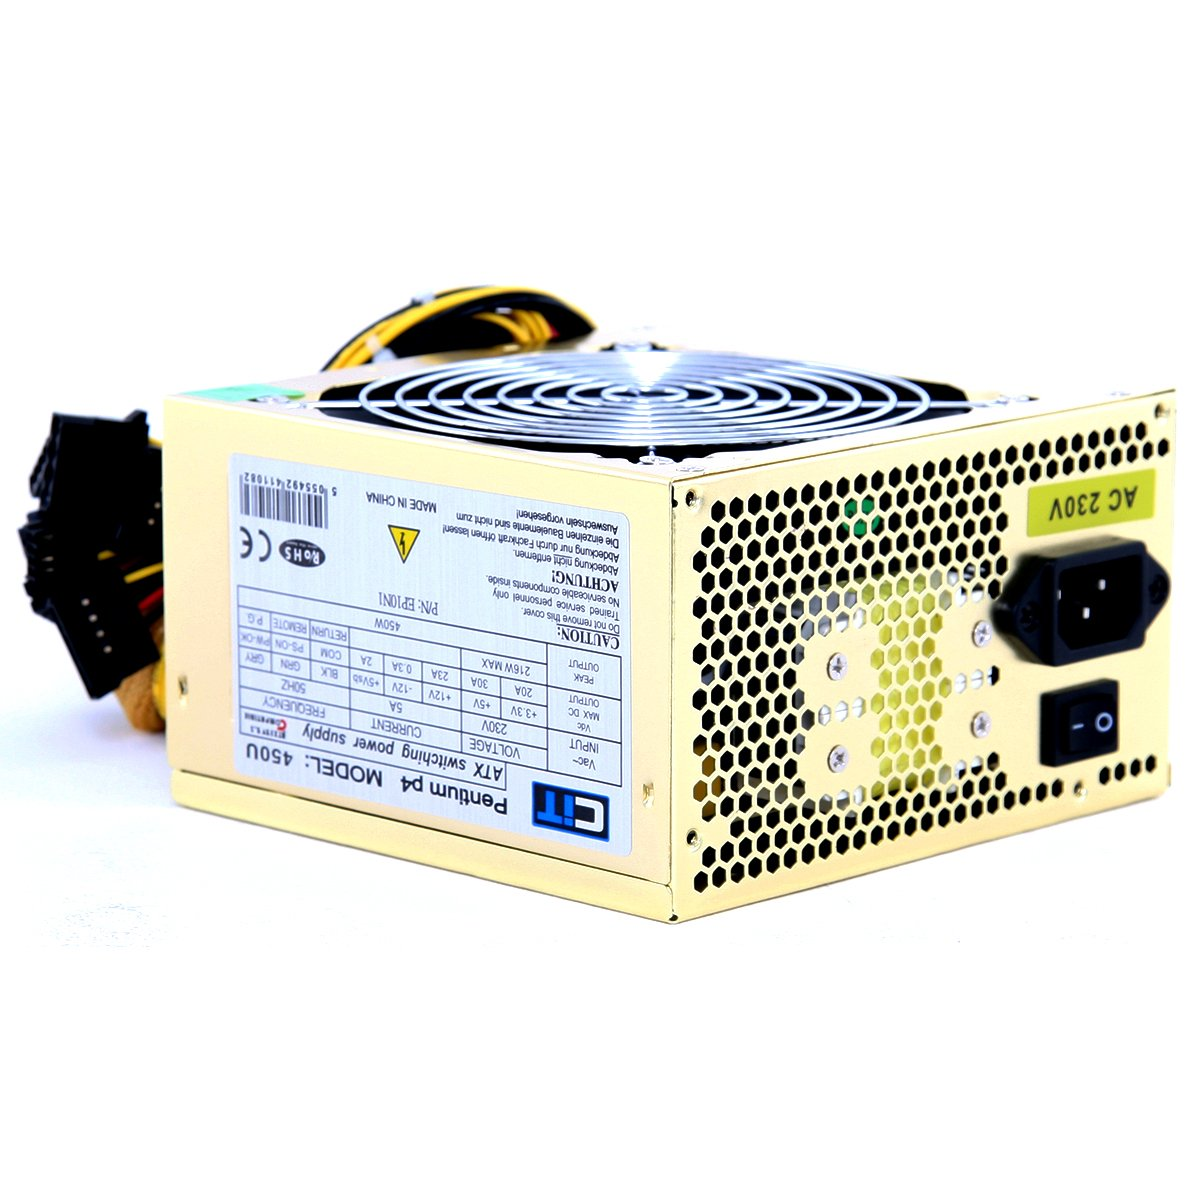 CIT 450w Gold 12CM Silent Atx Power Supply: Amazon.co.uk: Computers ...